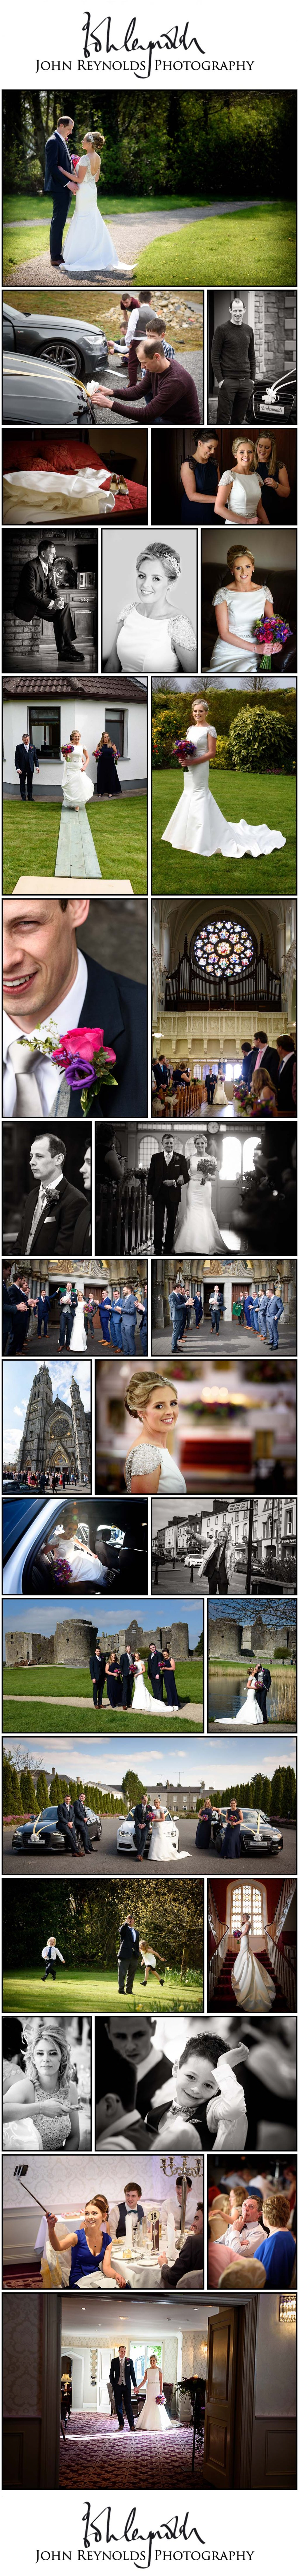 Blog Collage-Aoife&Declan